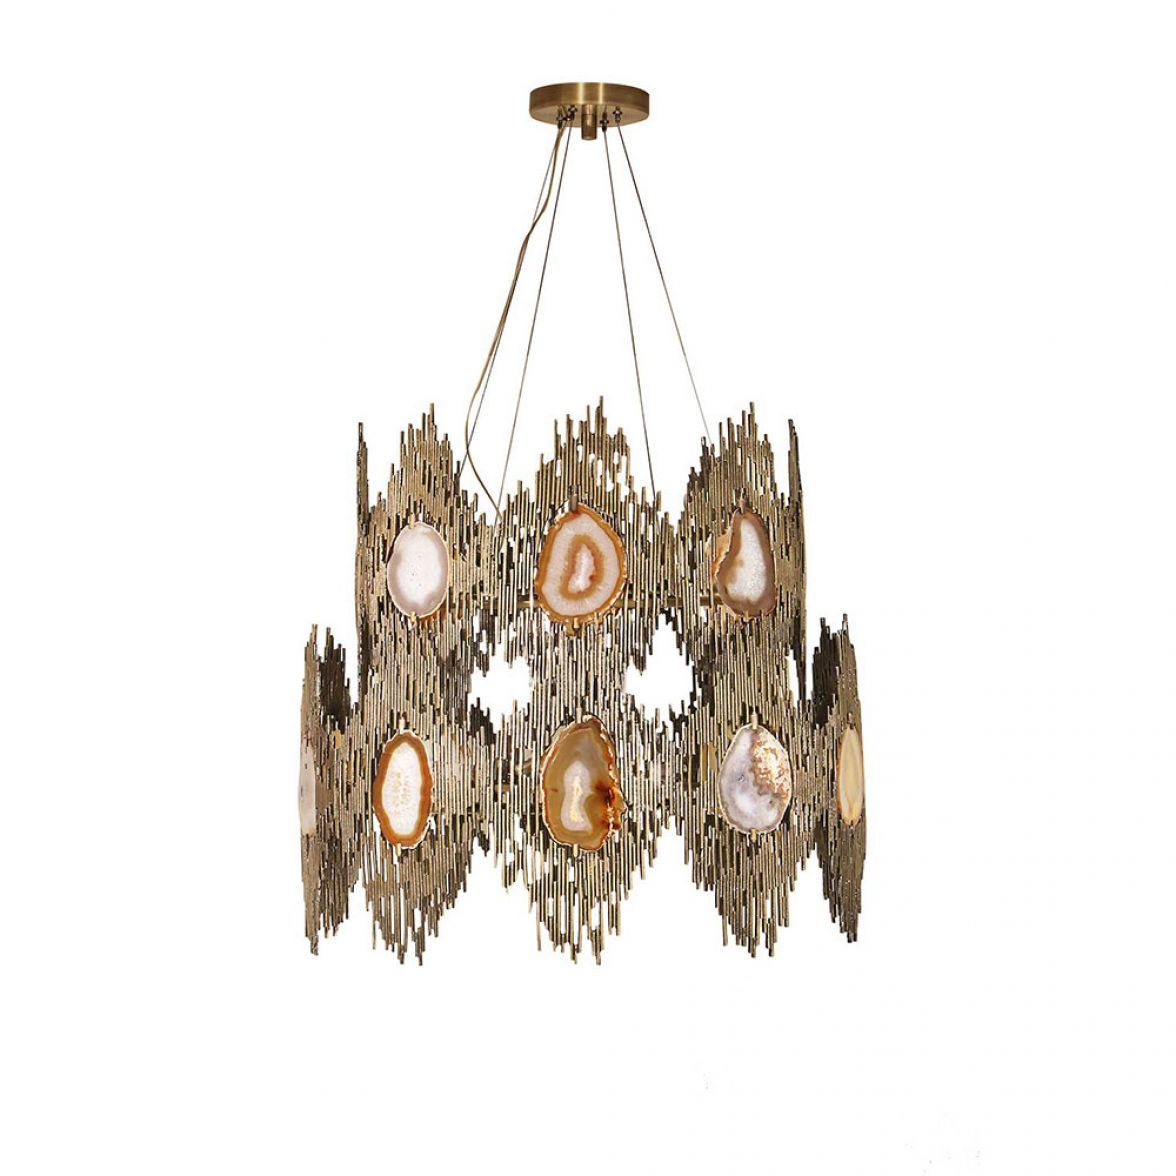 VIVRE 2 RINGS CHANDELIER